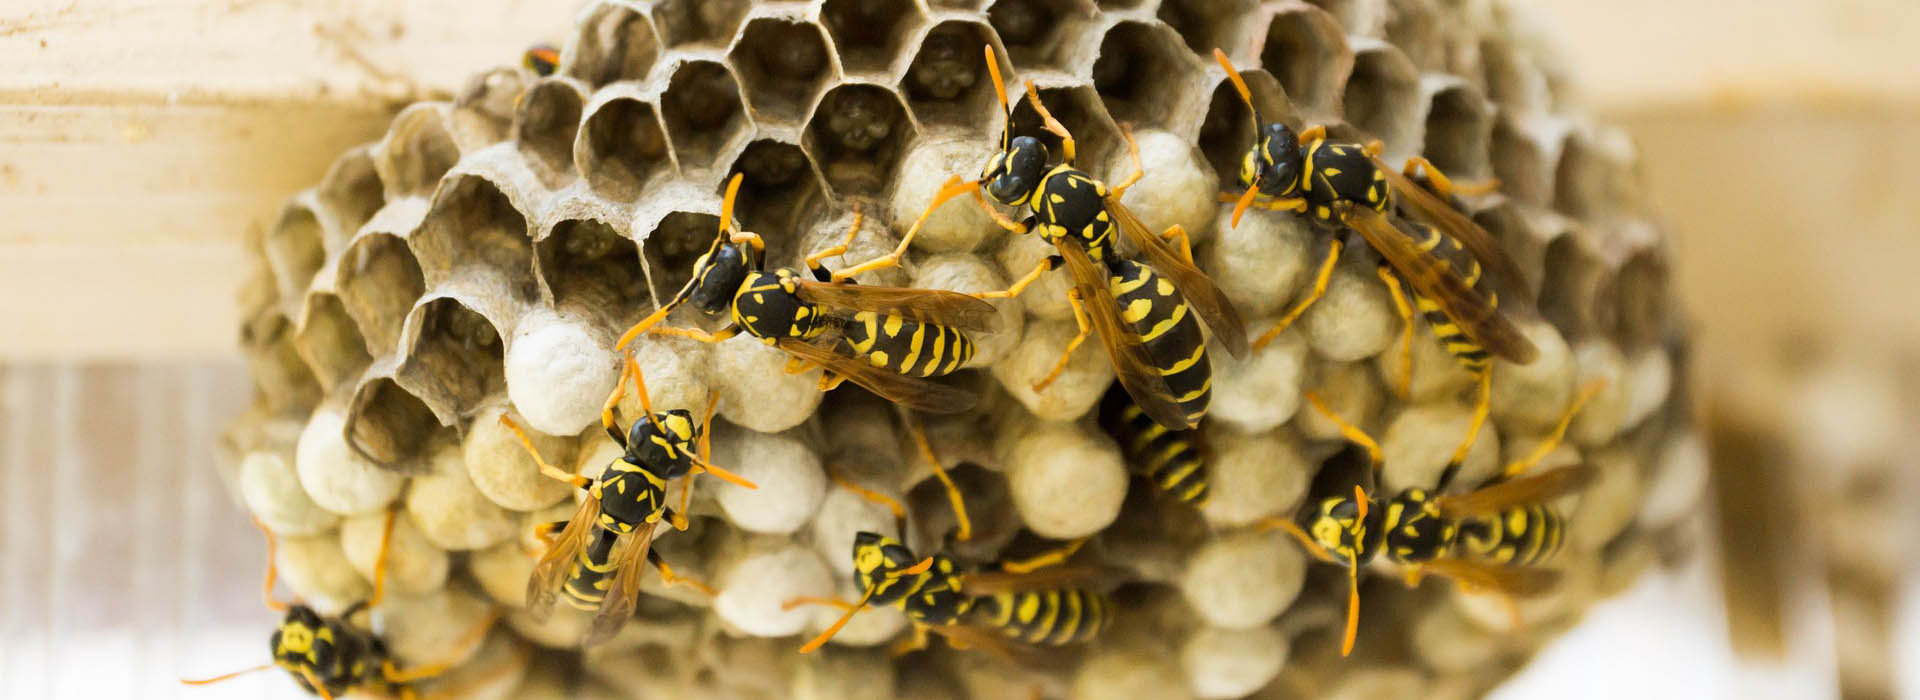 Wasp Control - MICROBEE Environmental - Pest Control H01